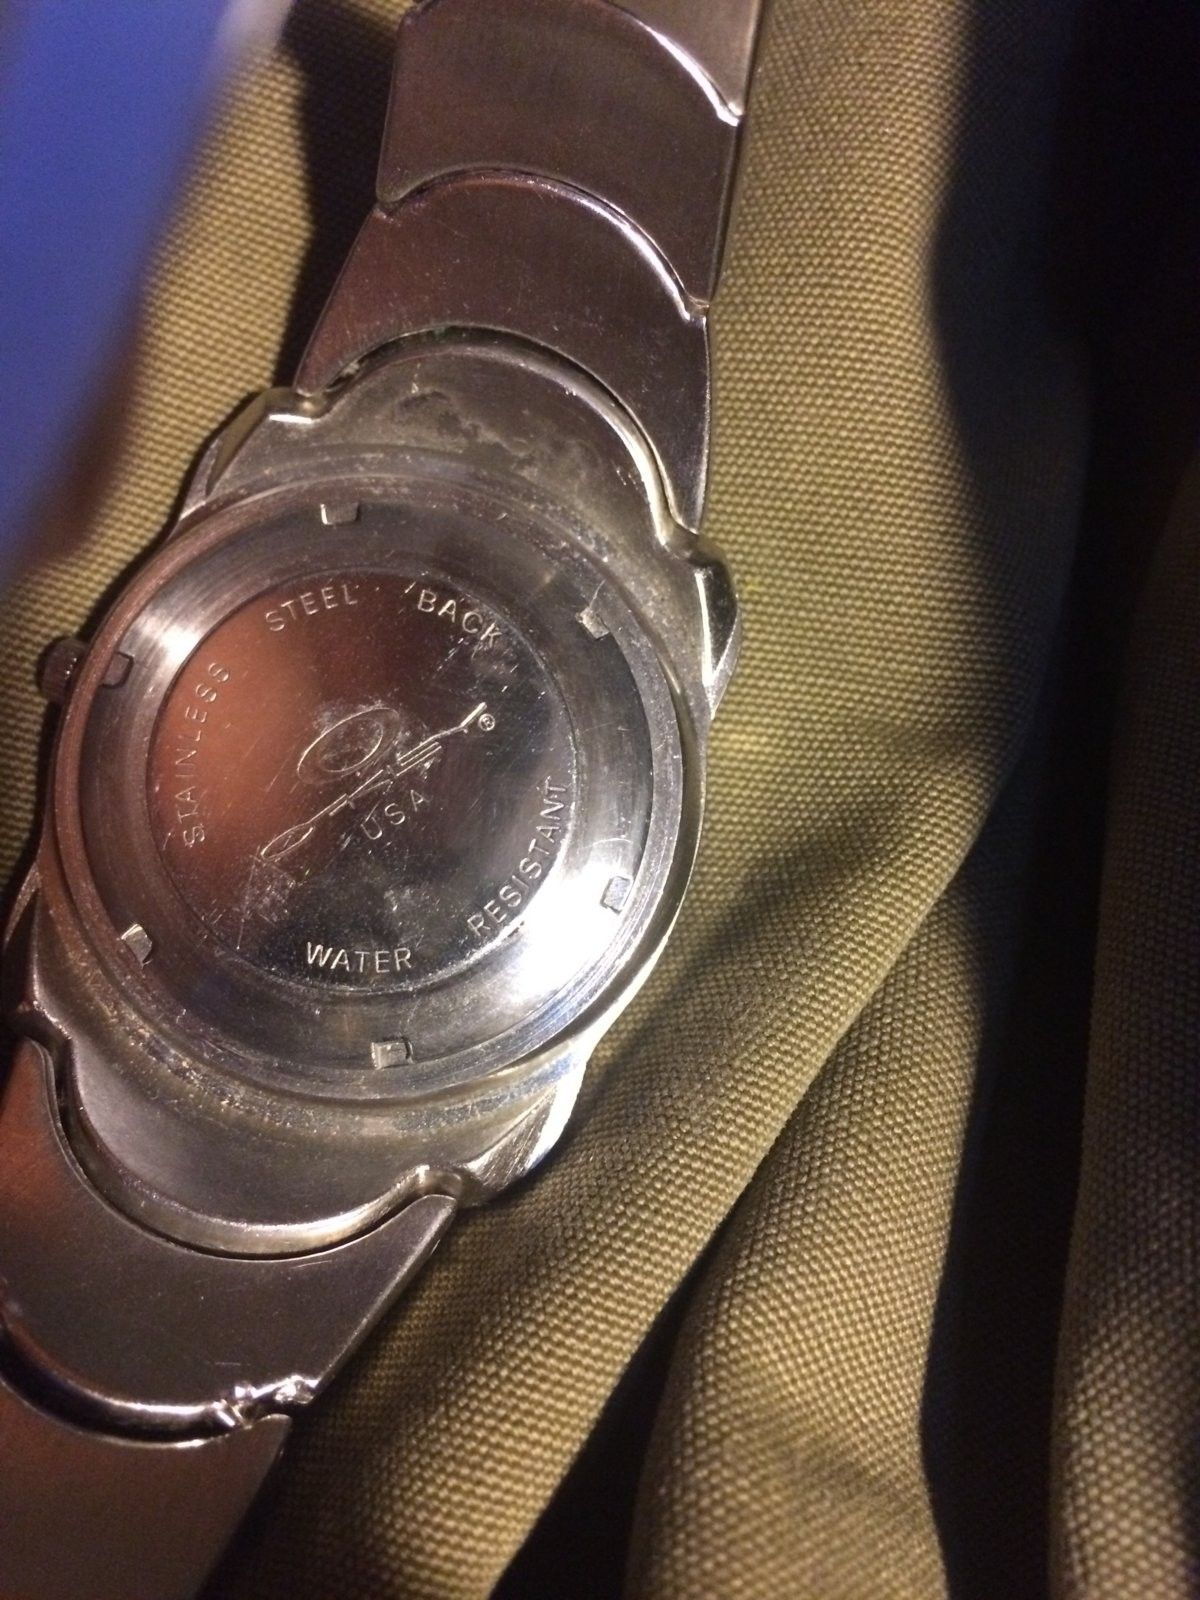 Quartz timebomb watch ? What is it fake or real pre timebomb ? - image.jpg